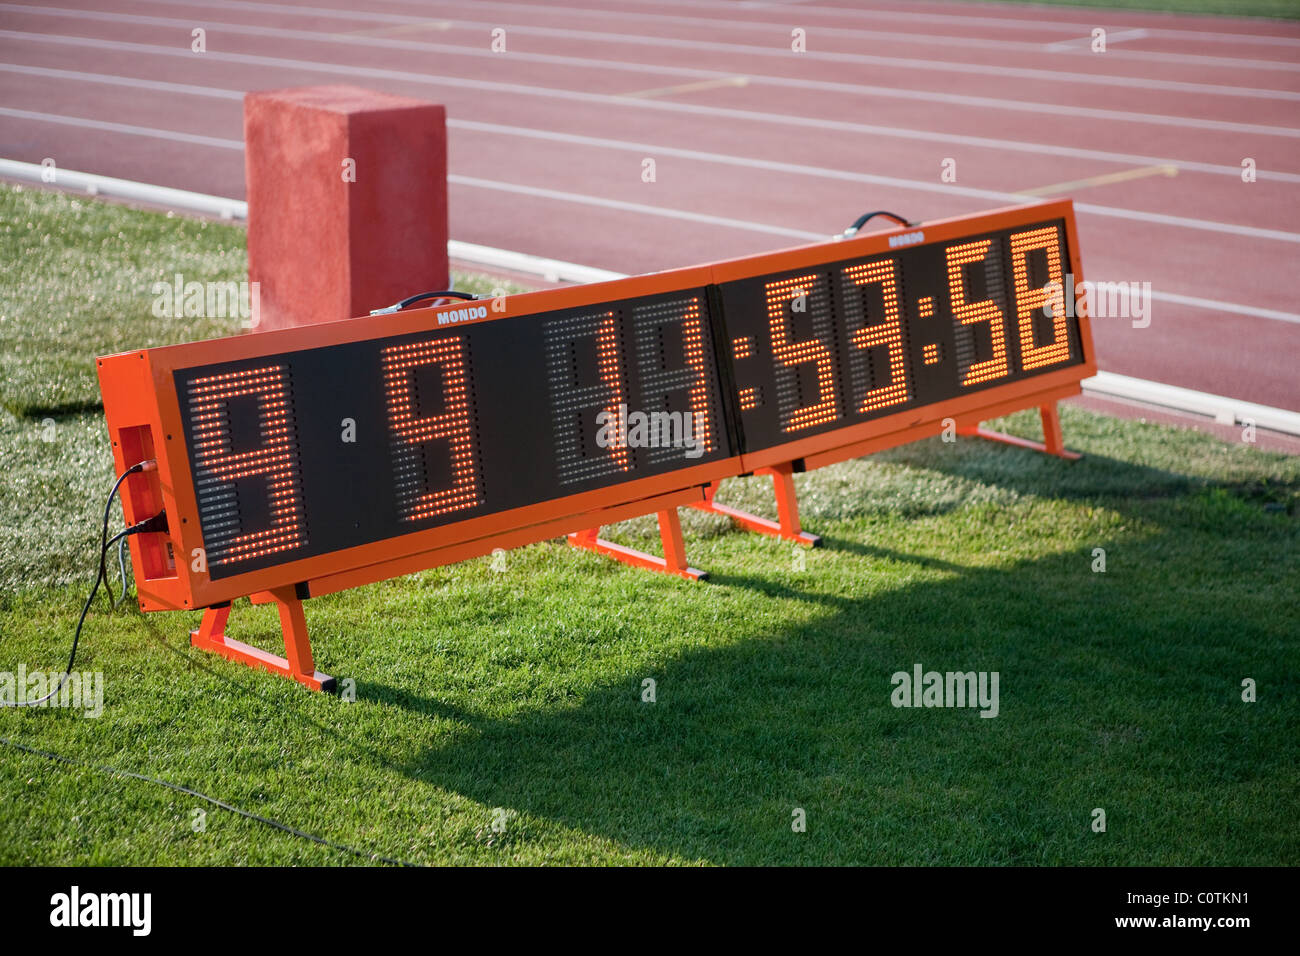 Athletics track timer digital instrument Sport outdoor competition race - Stock Image